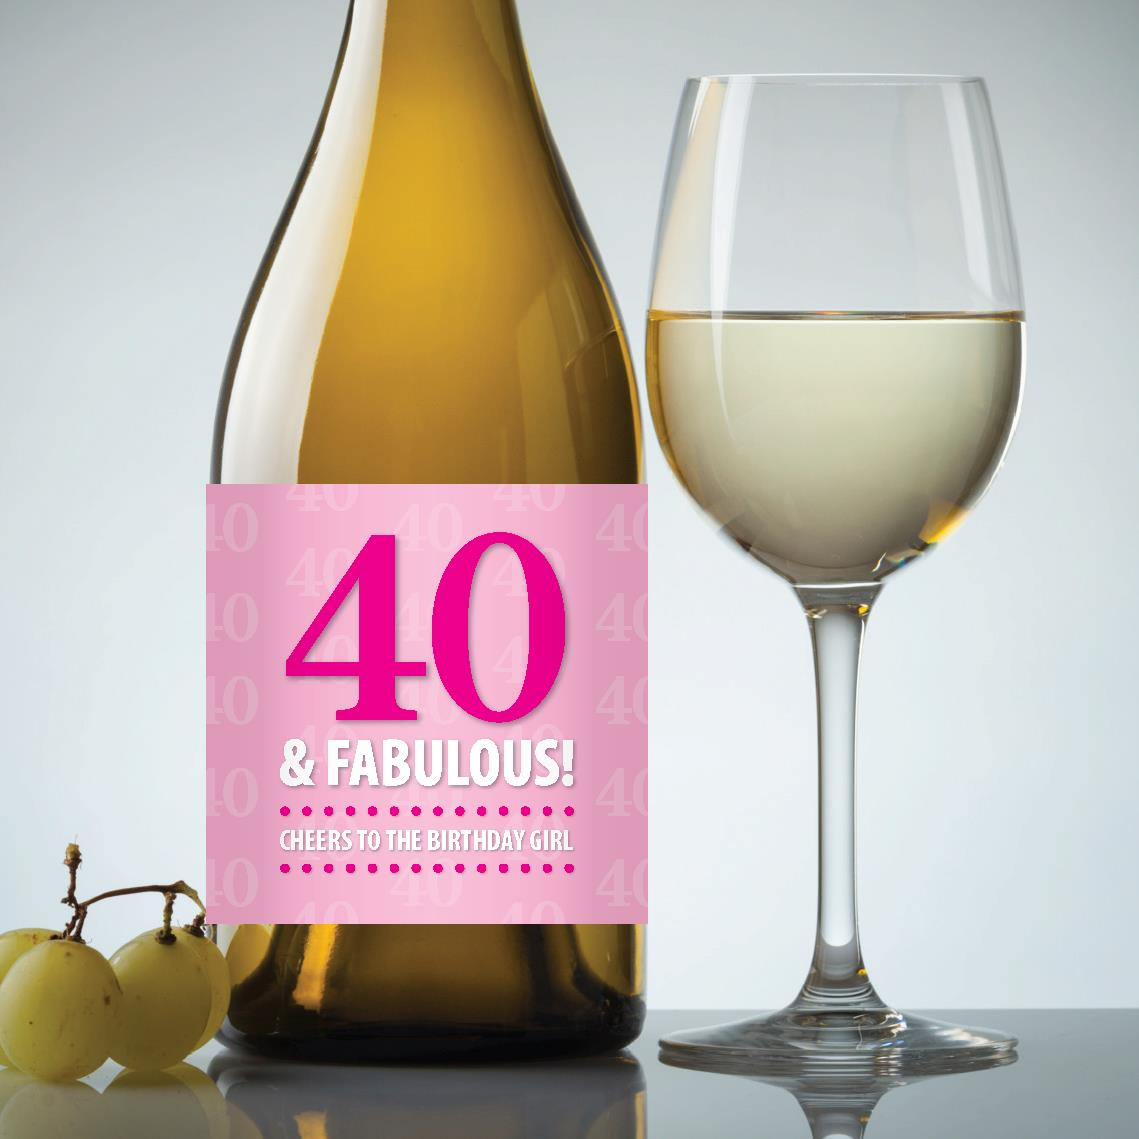 40th birthday wine labels ; Birthday_40-Fabulous_Staged-Image_Pink